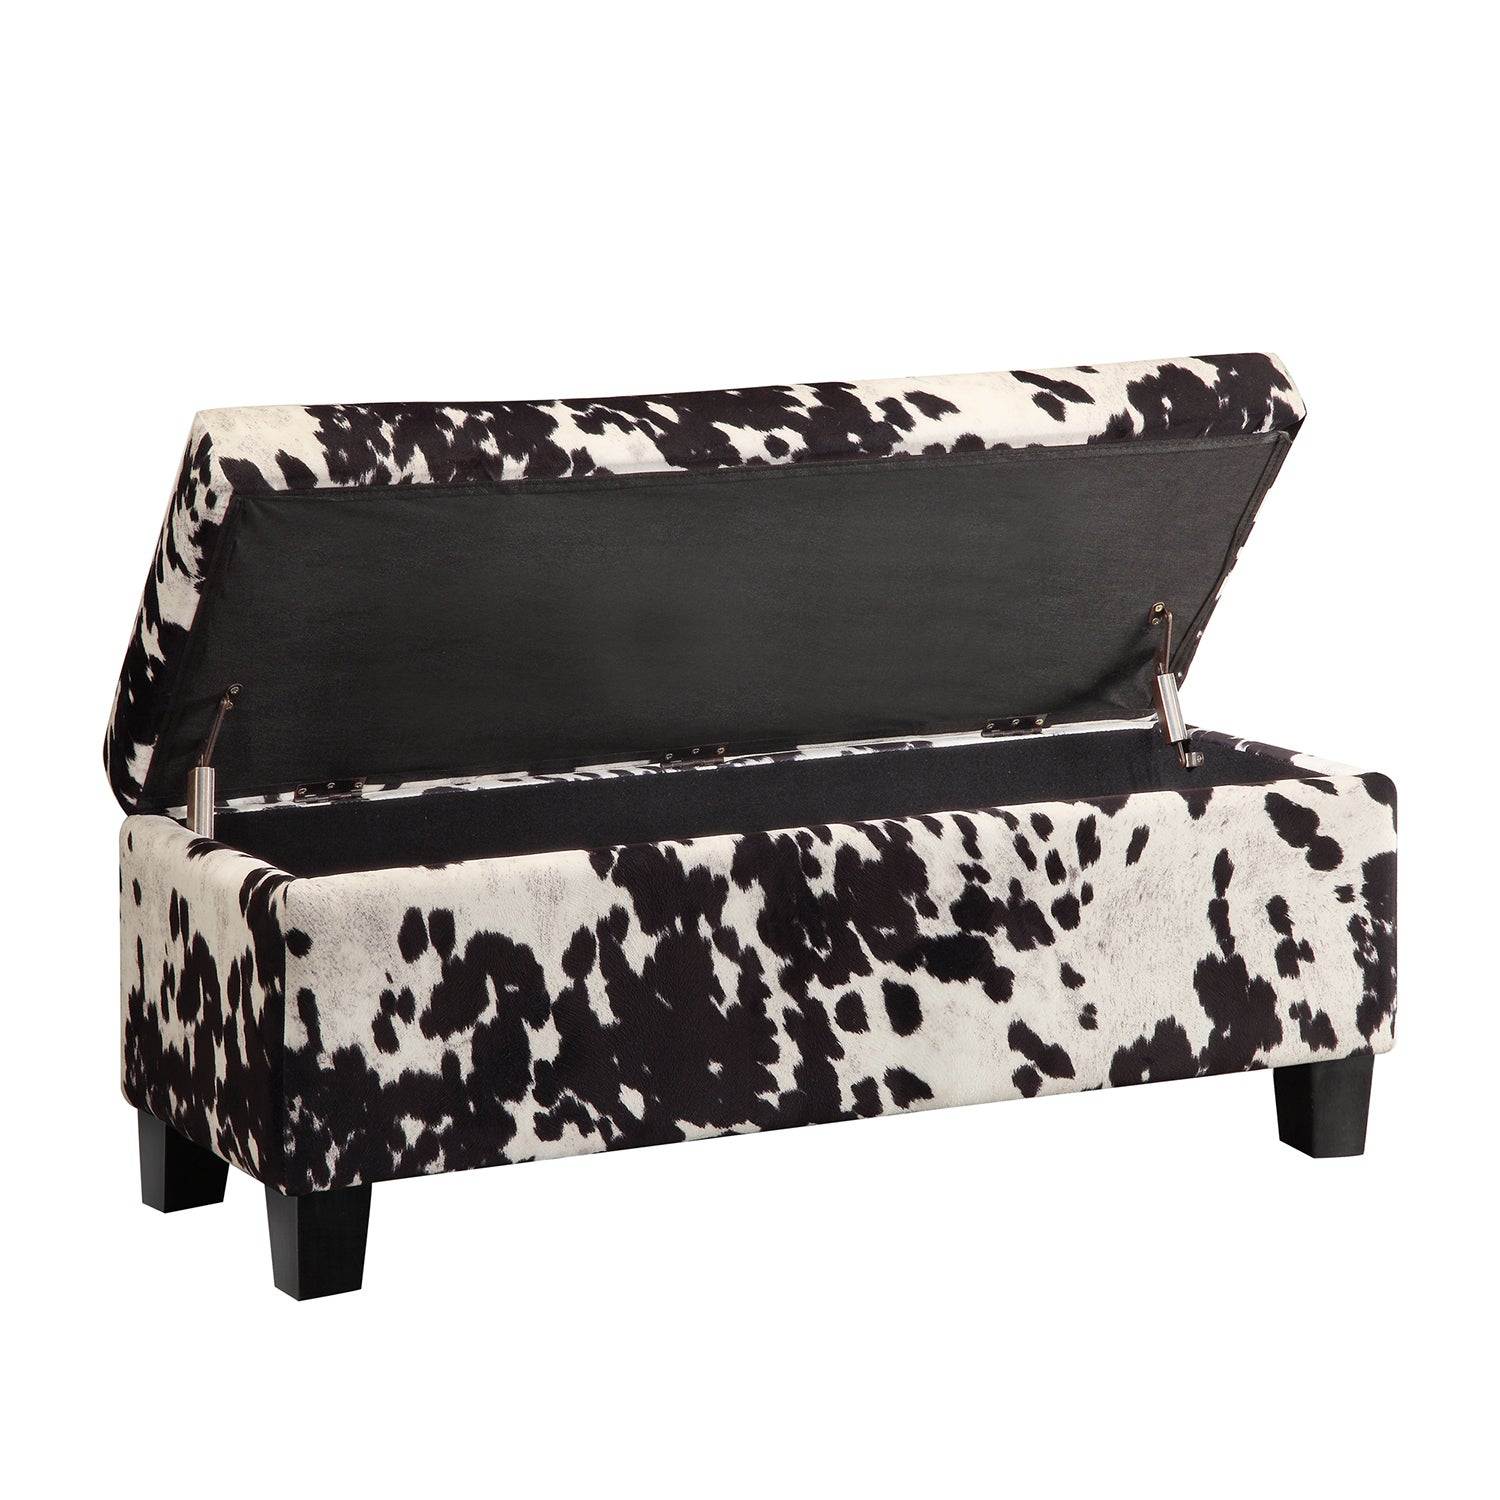 Delightful Shop Sauganash Black Cowhide Print Lift Top Storage Bench By INSPIRE Q Bold    On Sale   Free Shipping Today   Overstock.com   8119657